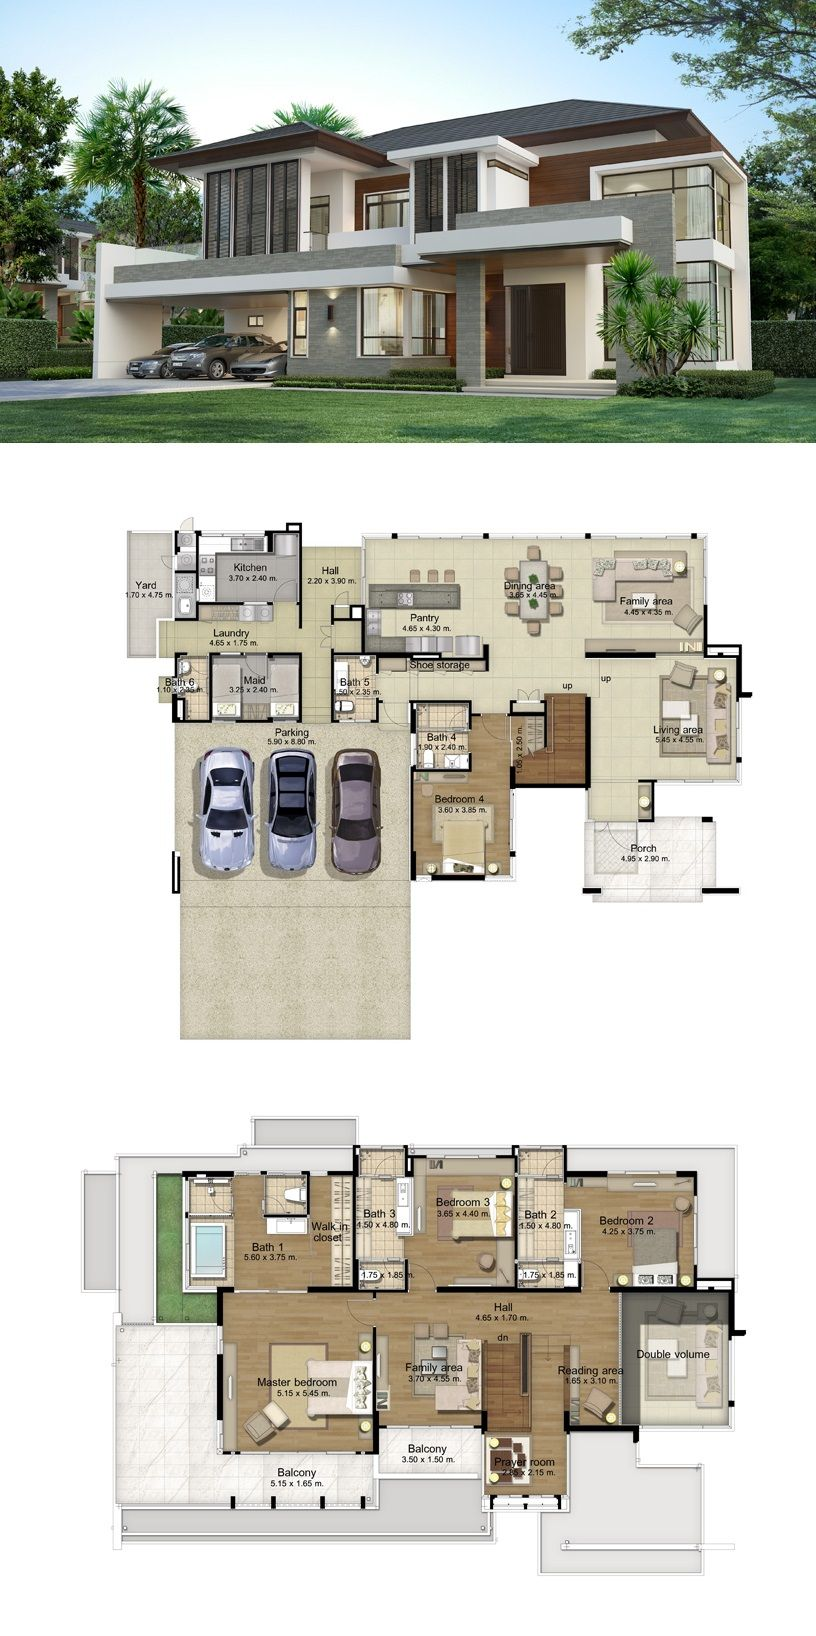 Land And Houses House Layout Plans Big Modern Houses House Layouts